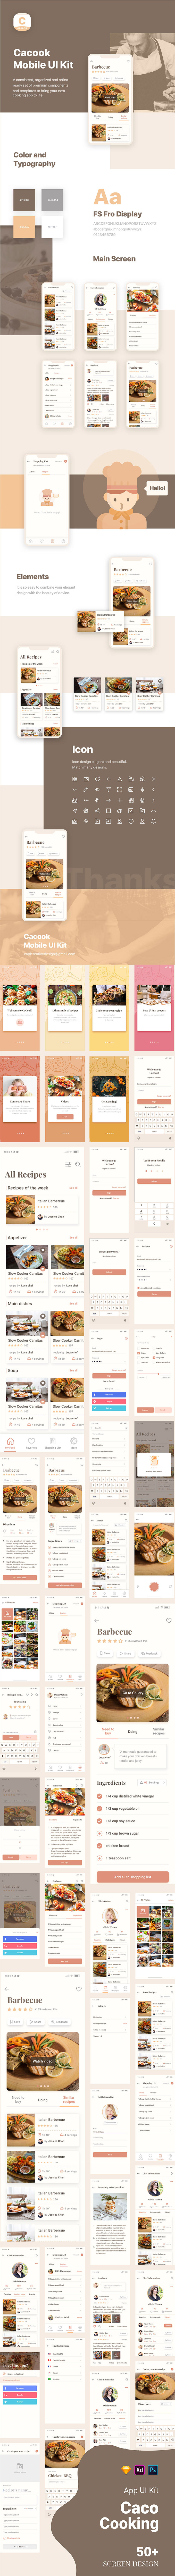 高端美食定制厨司评级相关APP UI KIT [Sketch,XD,PSD] Caco Cooking UI Kit